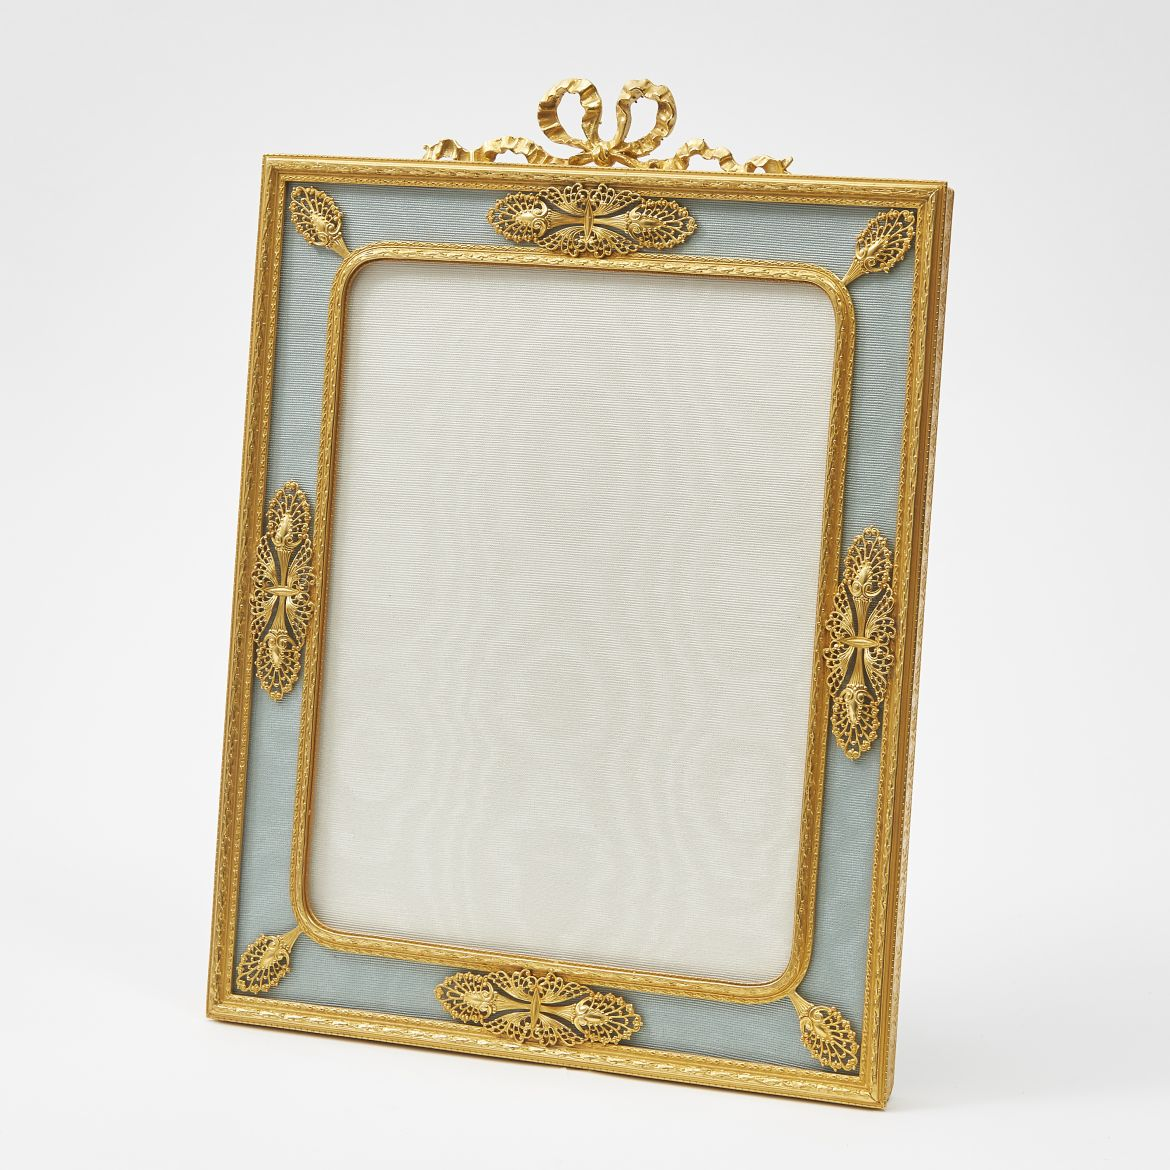 Ormolu Frame With Filigree Decoration